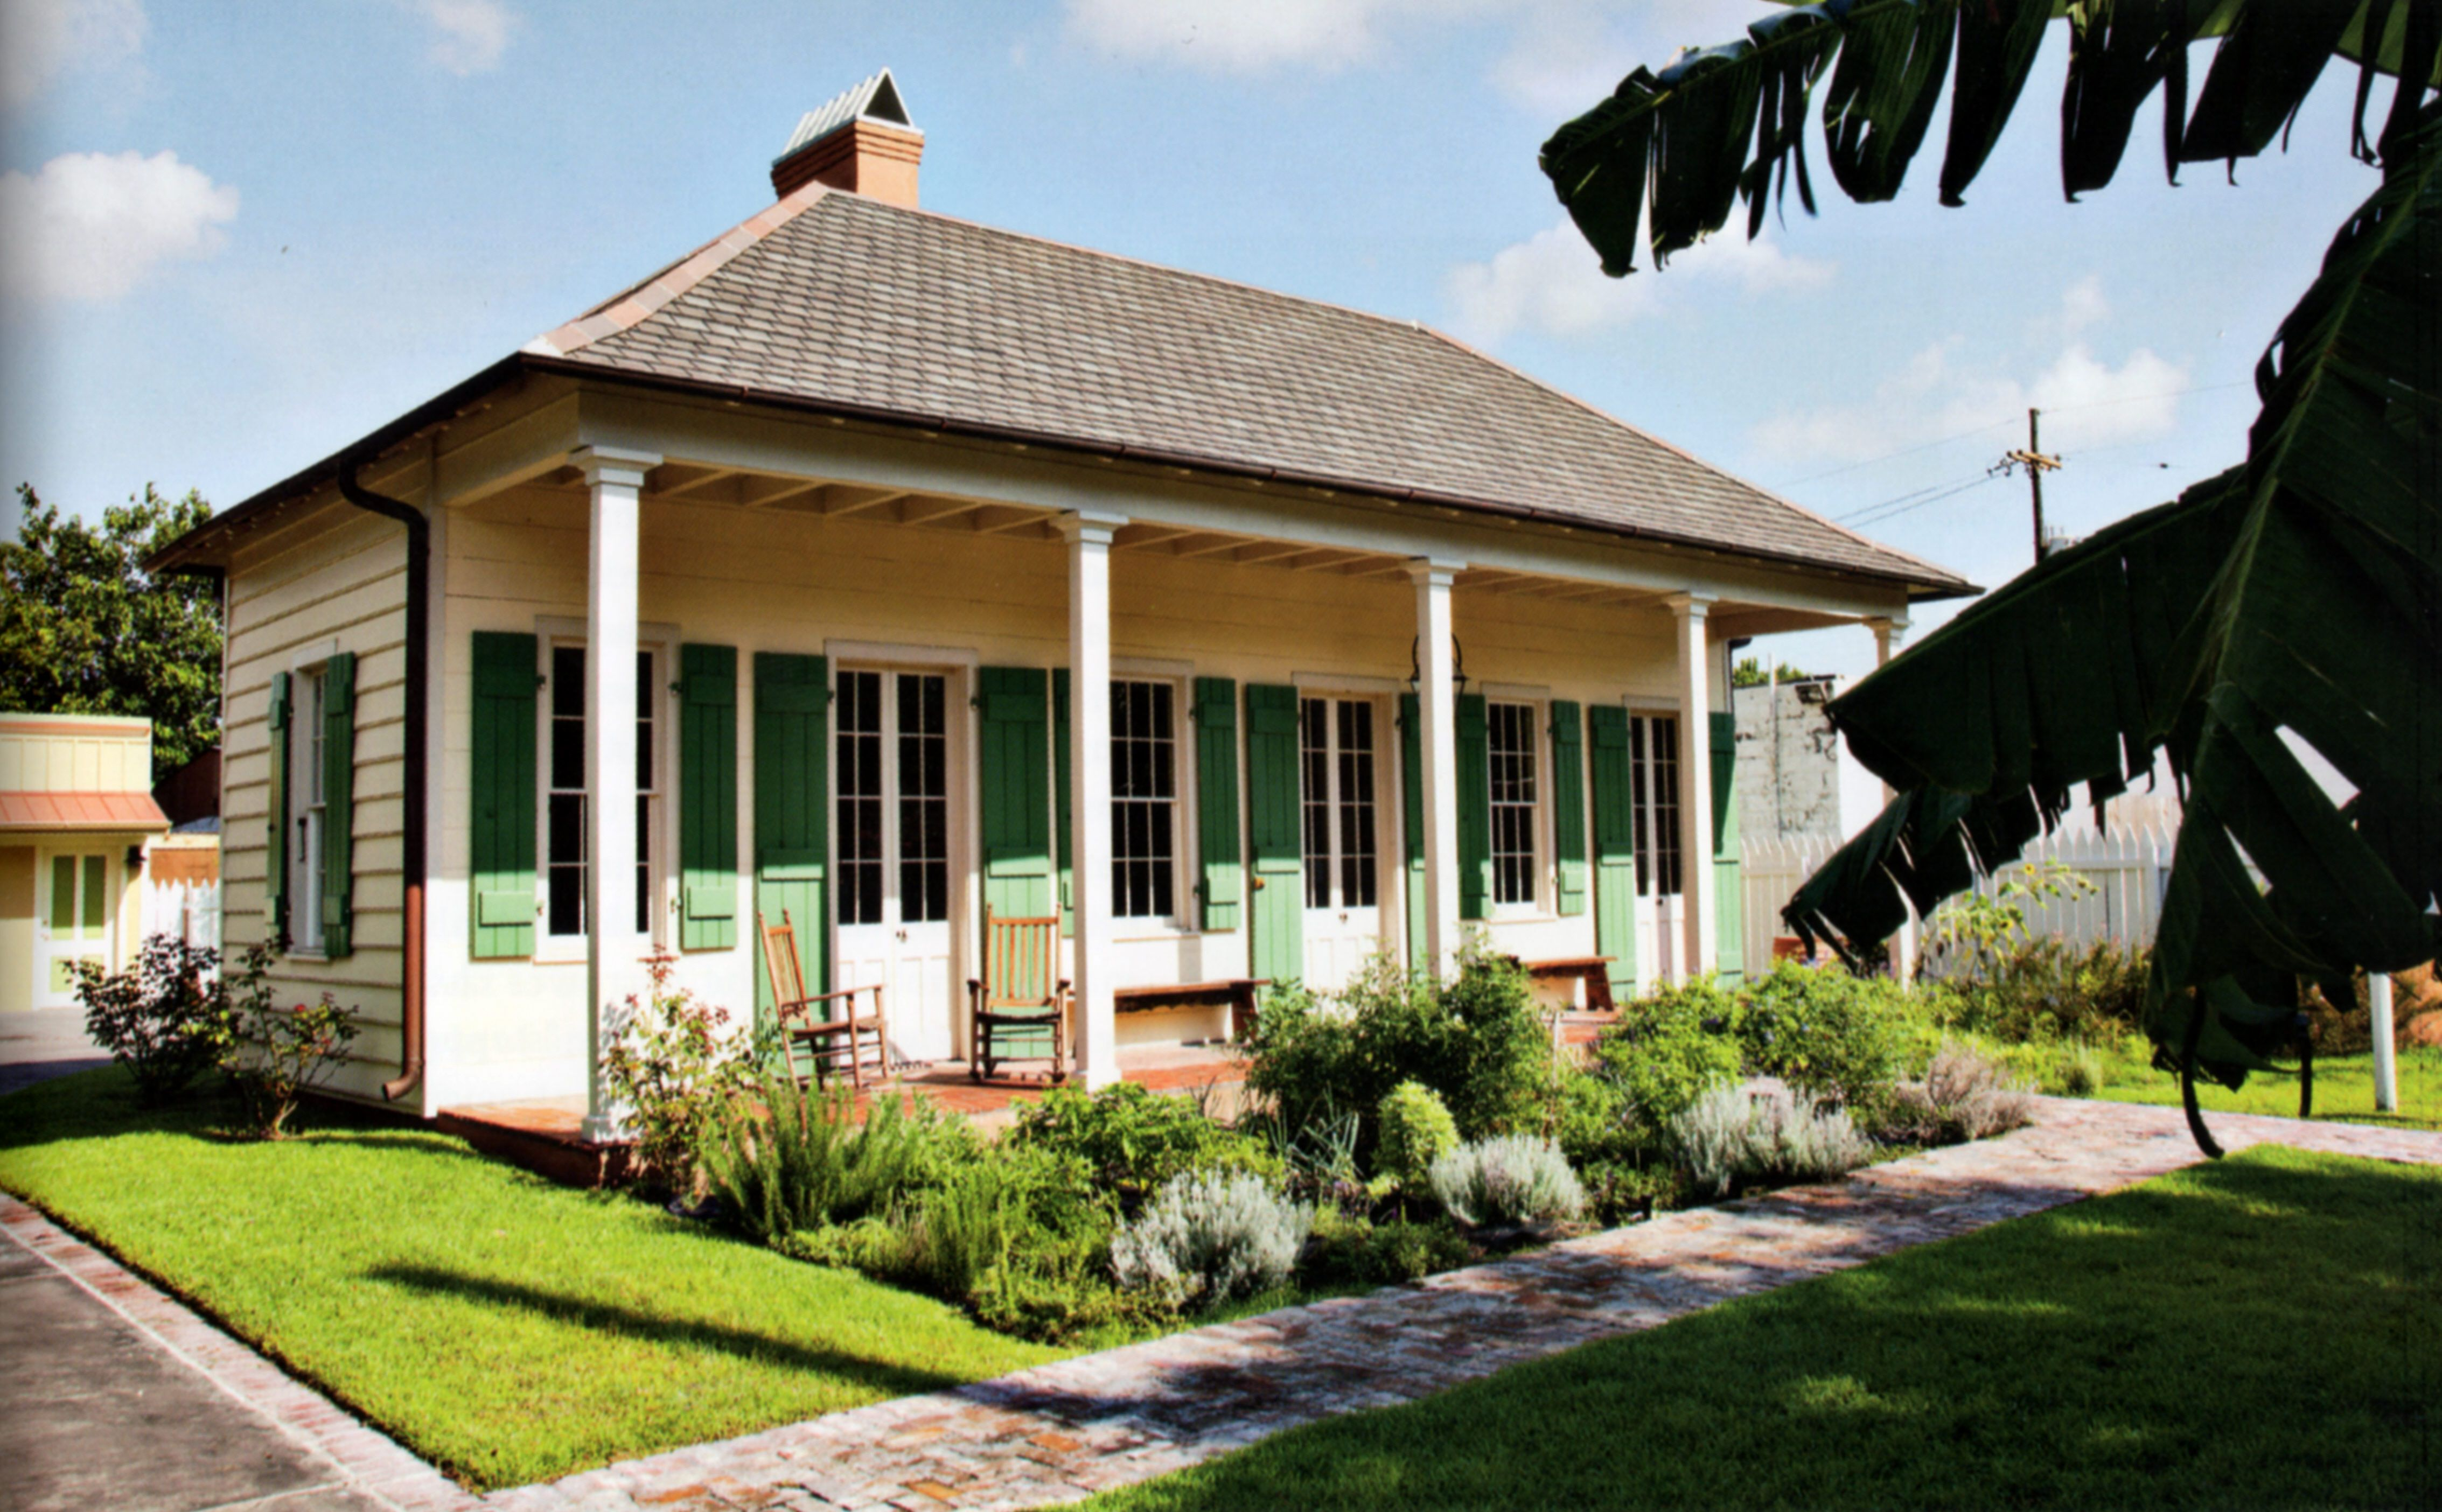 Plantation Kitchen House the lombard plantation reconstructed kitchen house. | spotlight